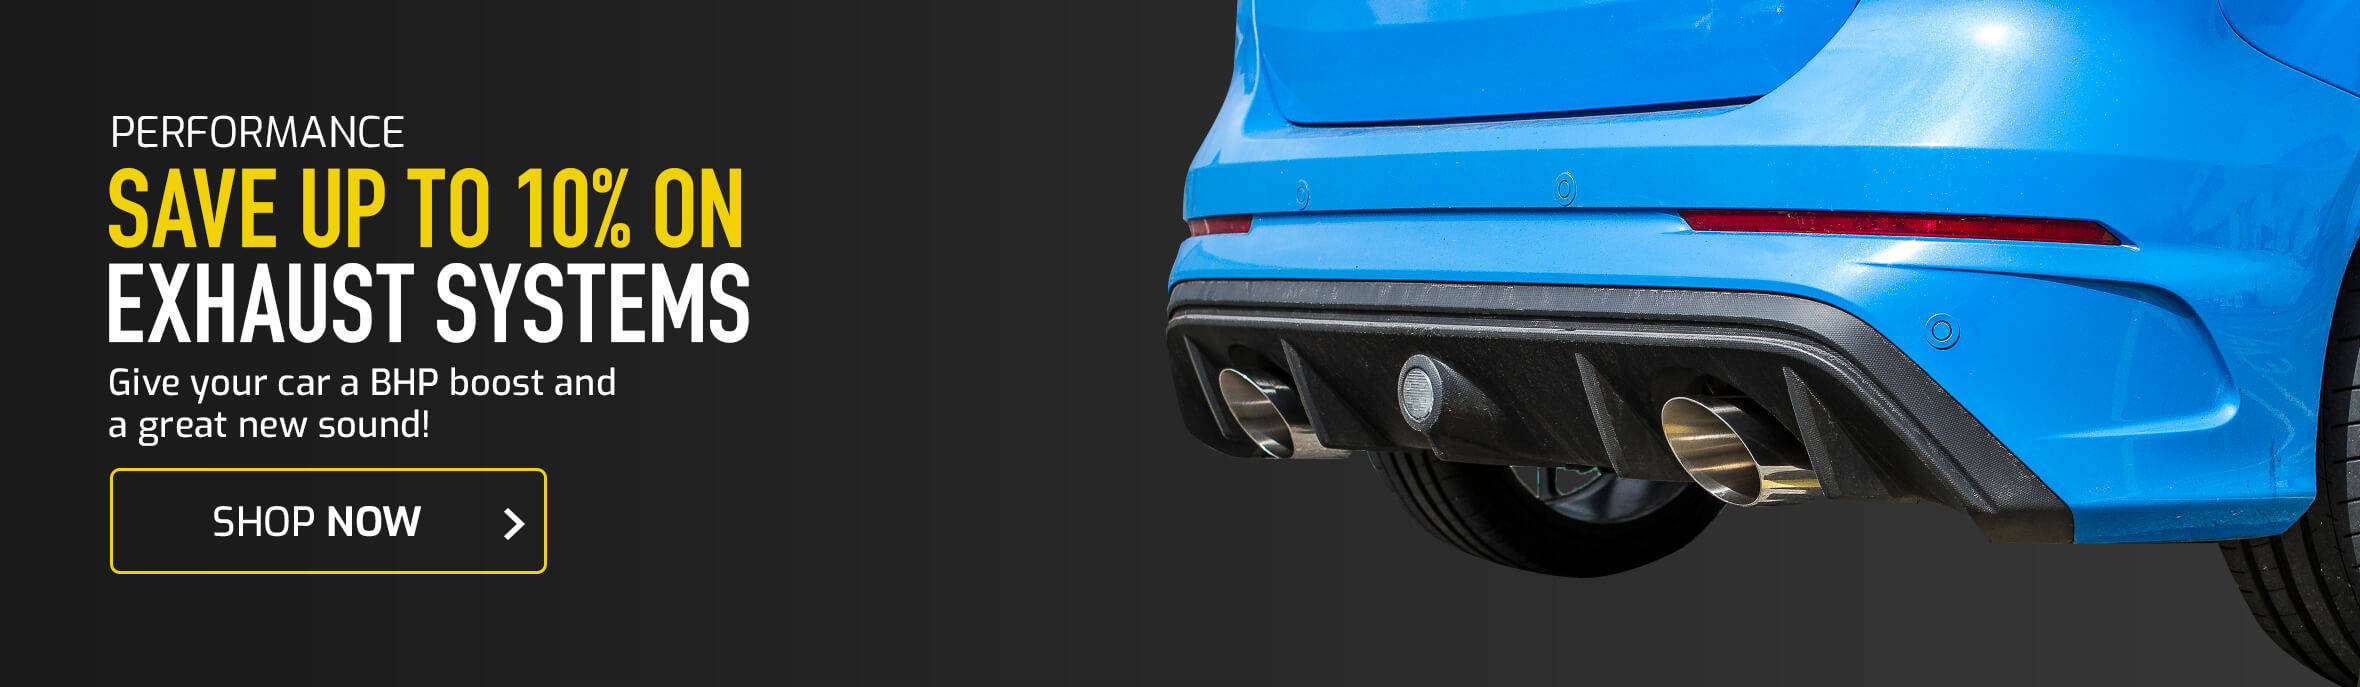 Save up to 10% on Exhaust Systems